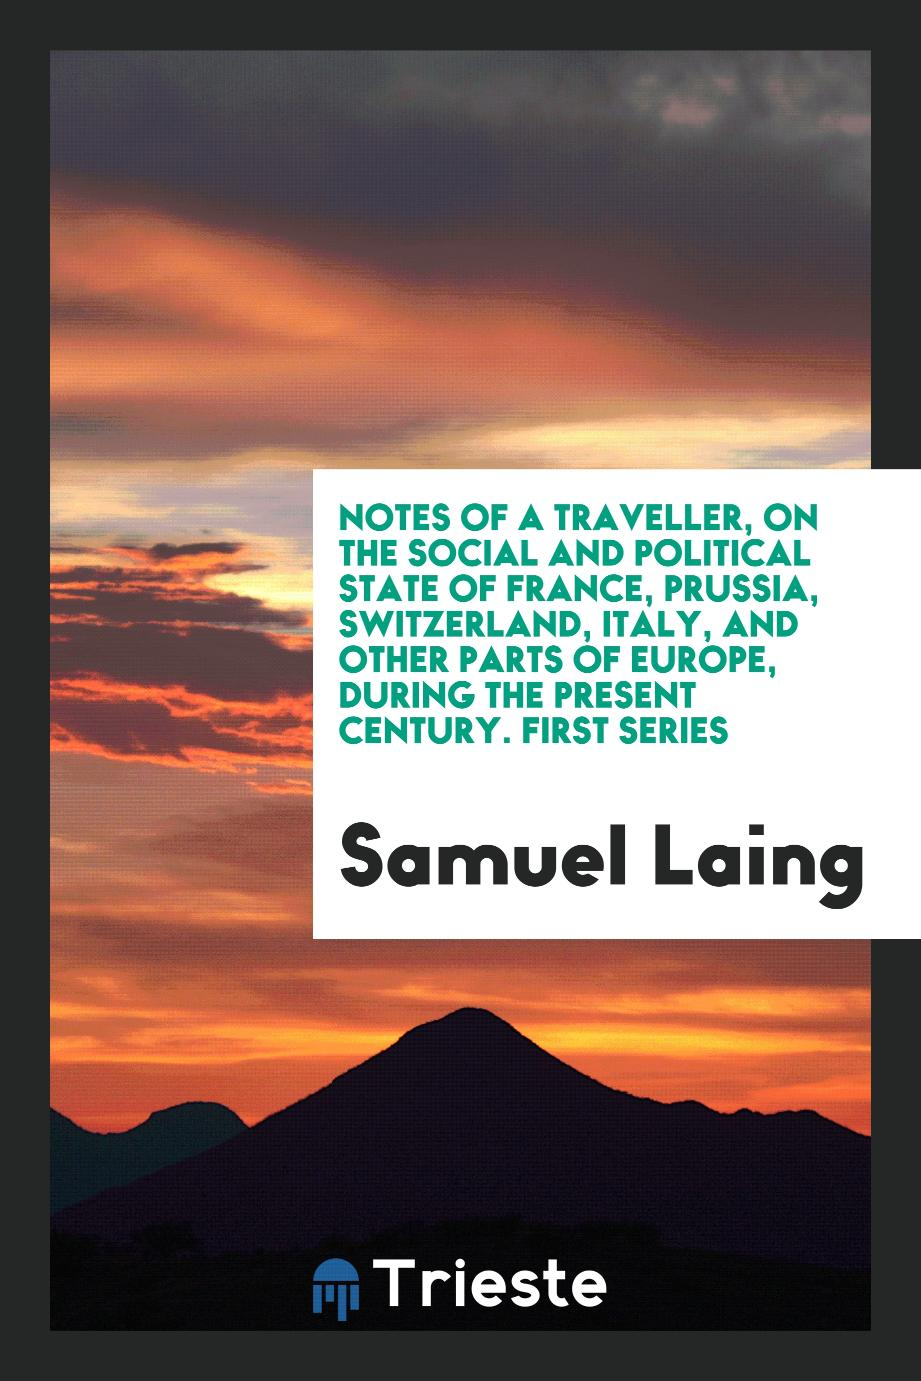 Notes of a Traveller, on the Social and Political State of France, Prussia, Switzerland, Italy, and Other Parts of Europe, during the Present Century. First Series